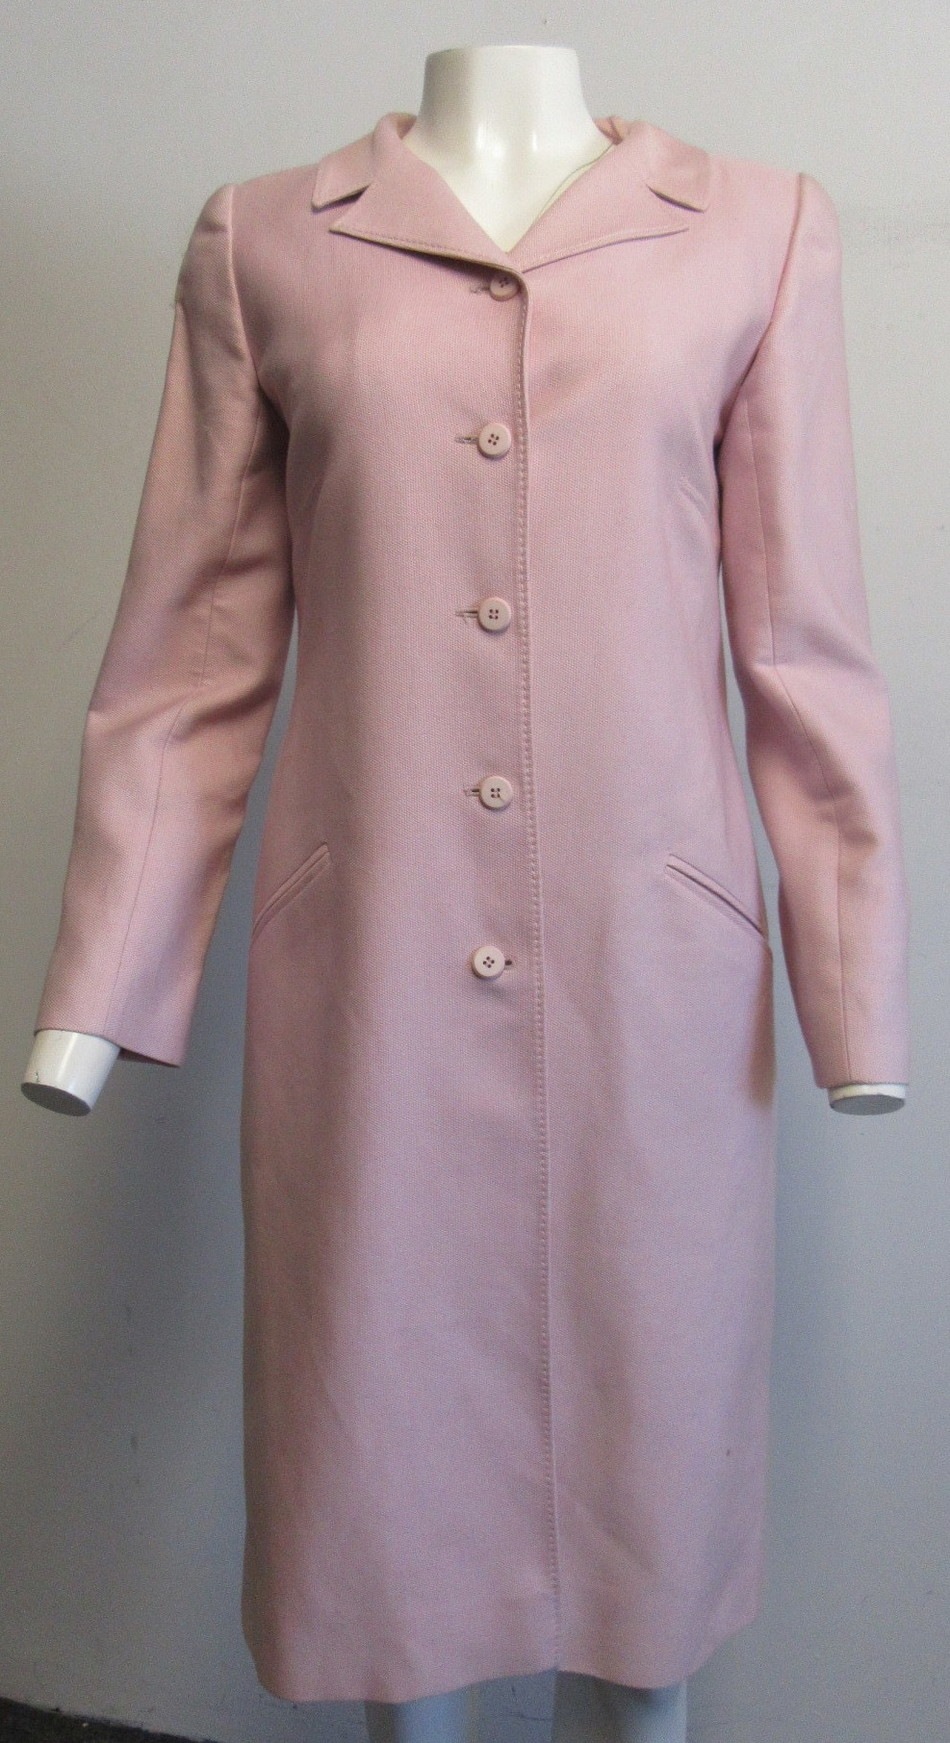 765fcb94a09 Details about VALENTINO pink textured cotton,silk long lightweight coat SZ 6